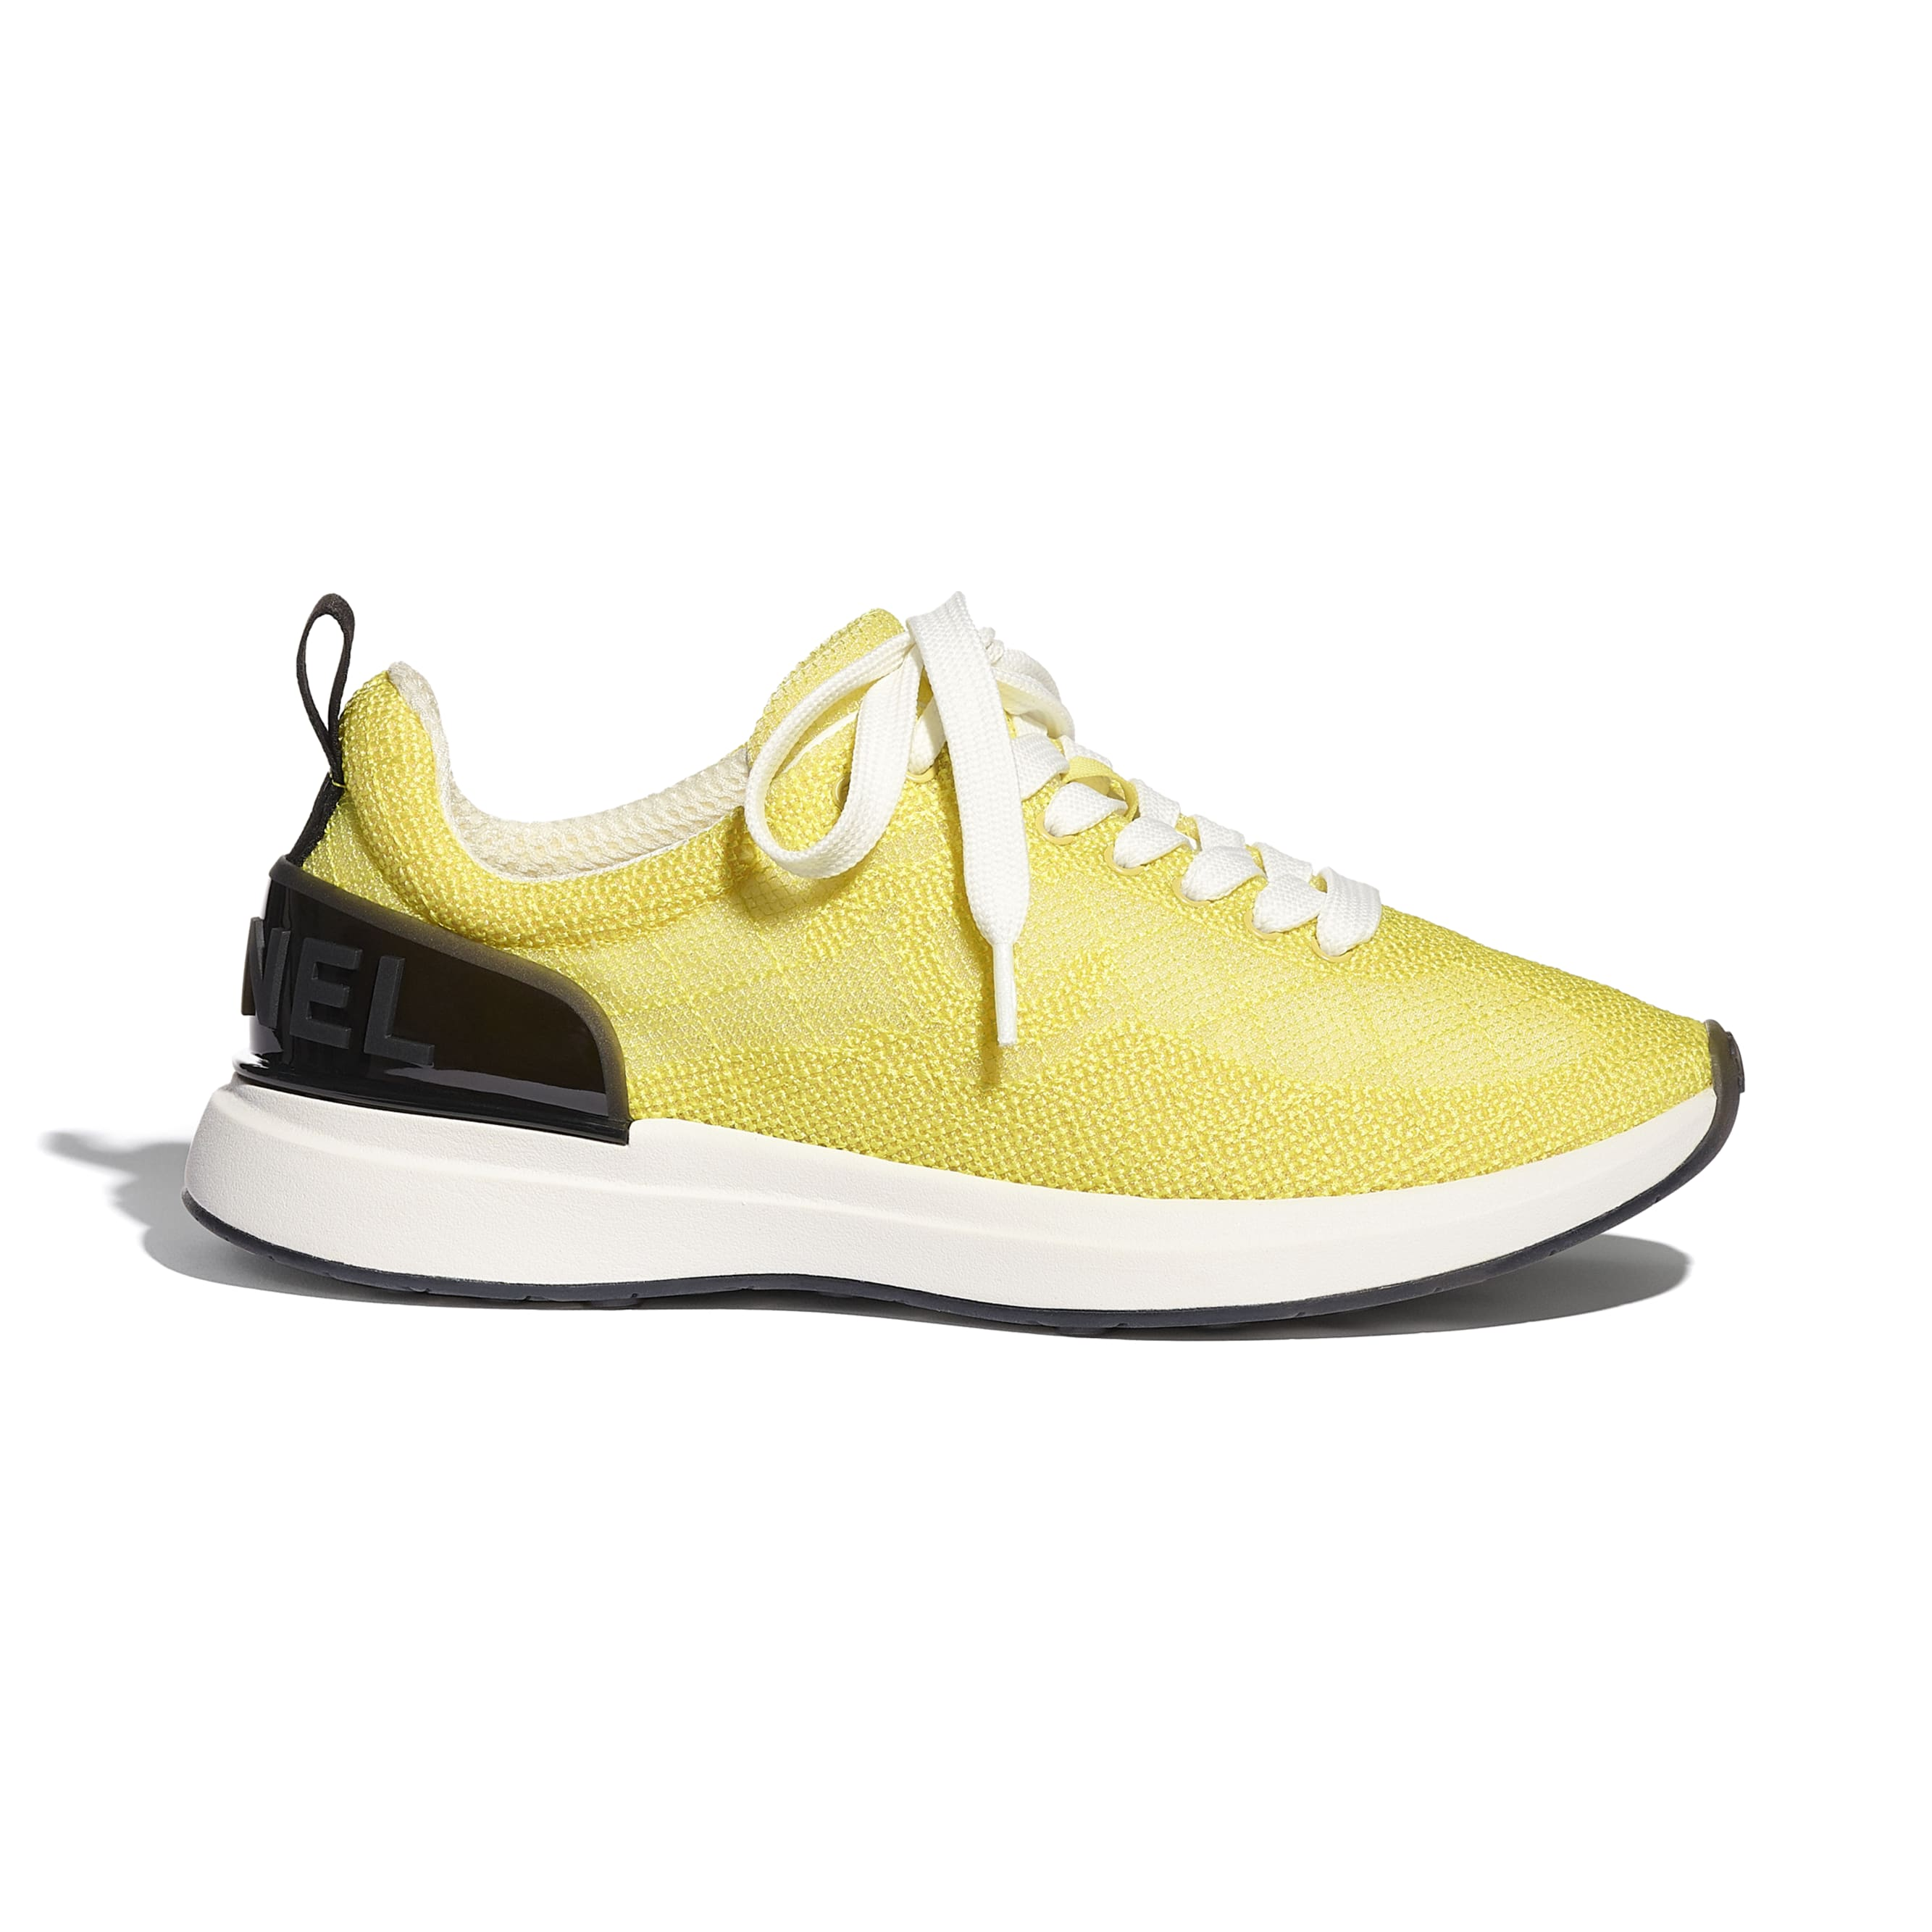 Trainers - Yellow - Embroidered Mesh - CHANEL - Default view - see standard sized version